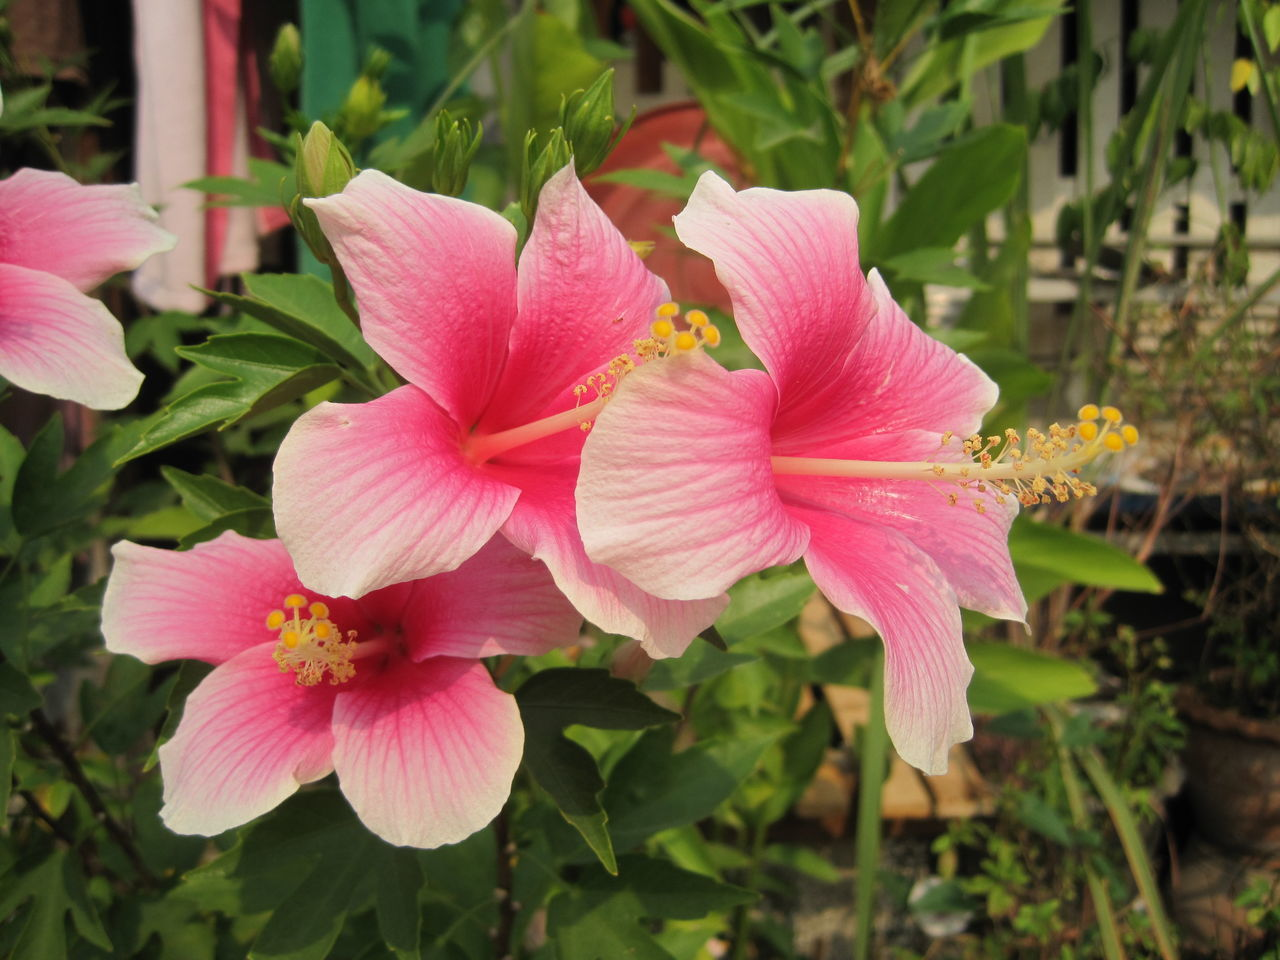 flower, petal, fragility, flower head, growth, beauty in nature, pink color, freshness, nature, blooming, plant, focus on foreground, close-up, day, outdoors, no people, periwinkle, day lily, hibiscus, petunia